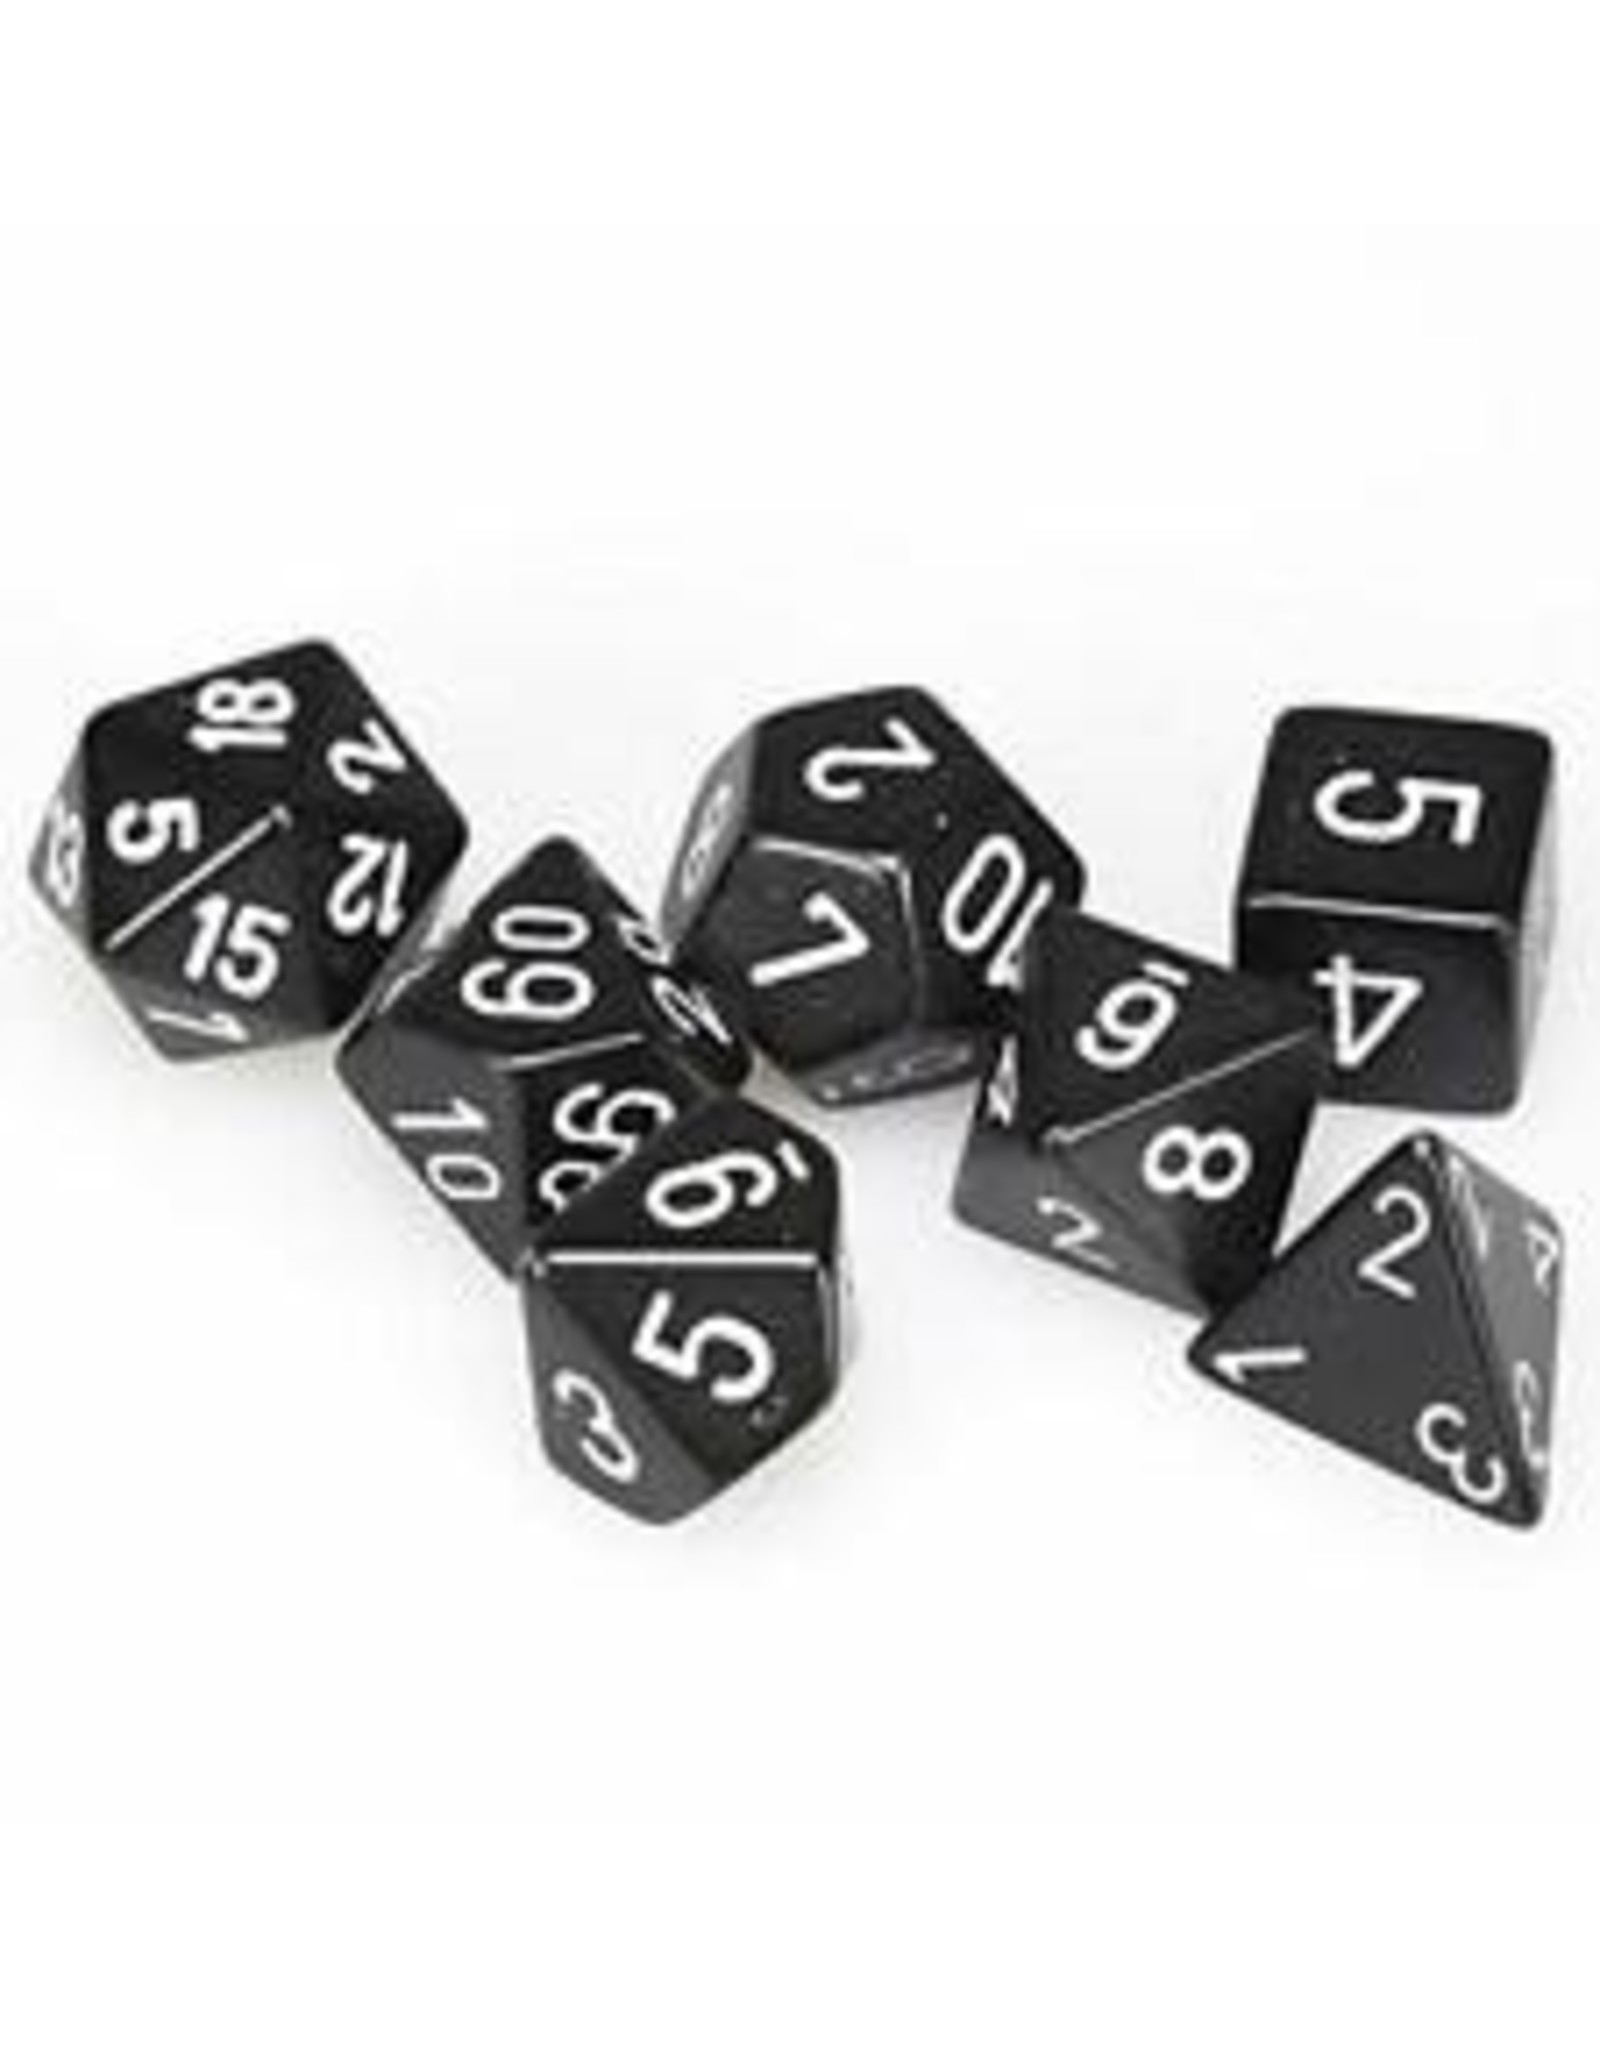 Chessex 7-Set Polyhedral Black/White